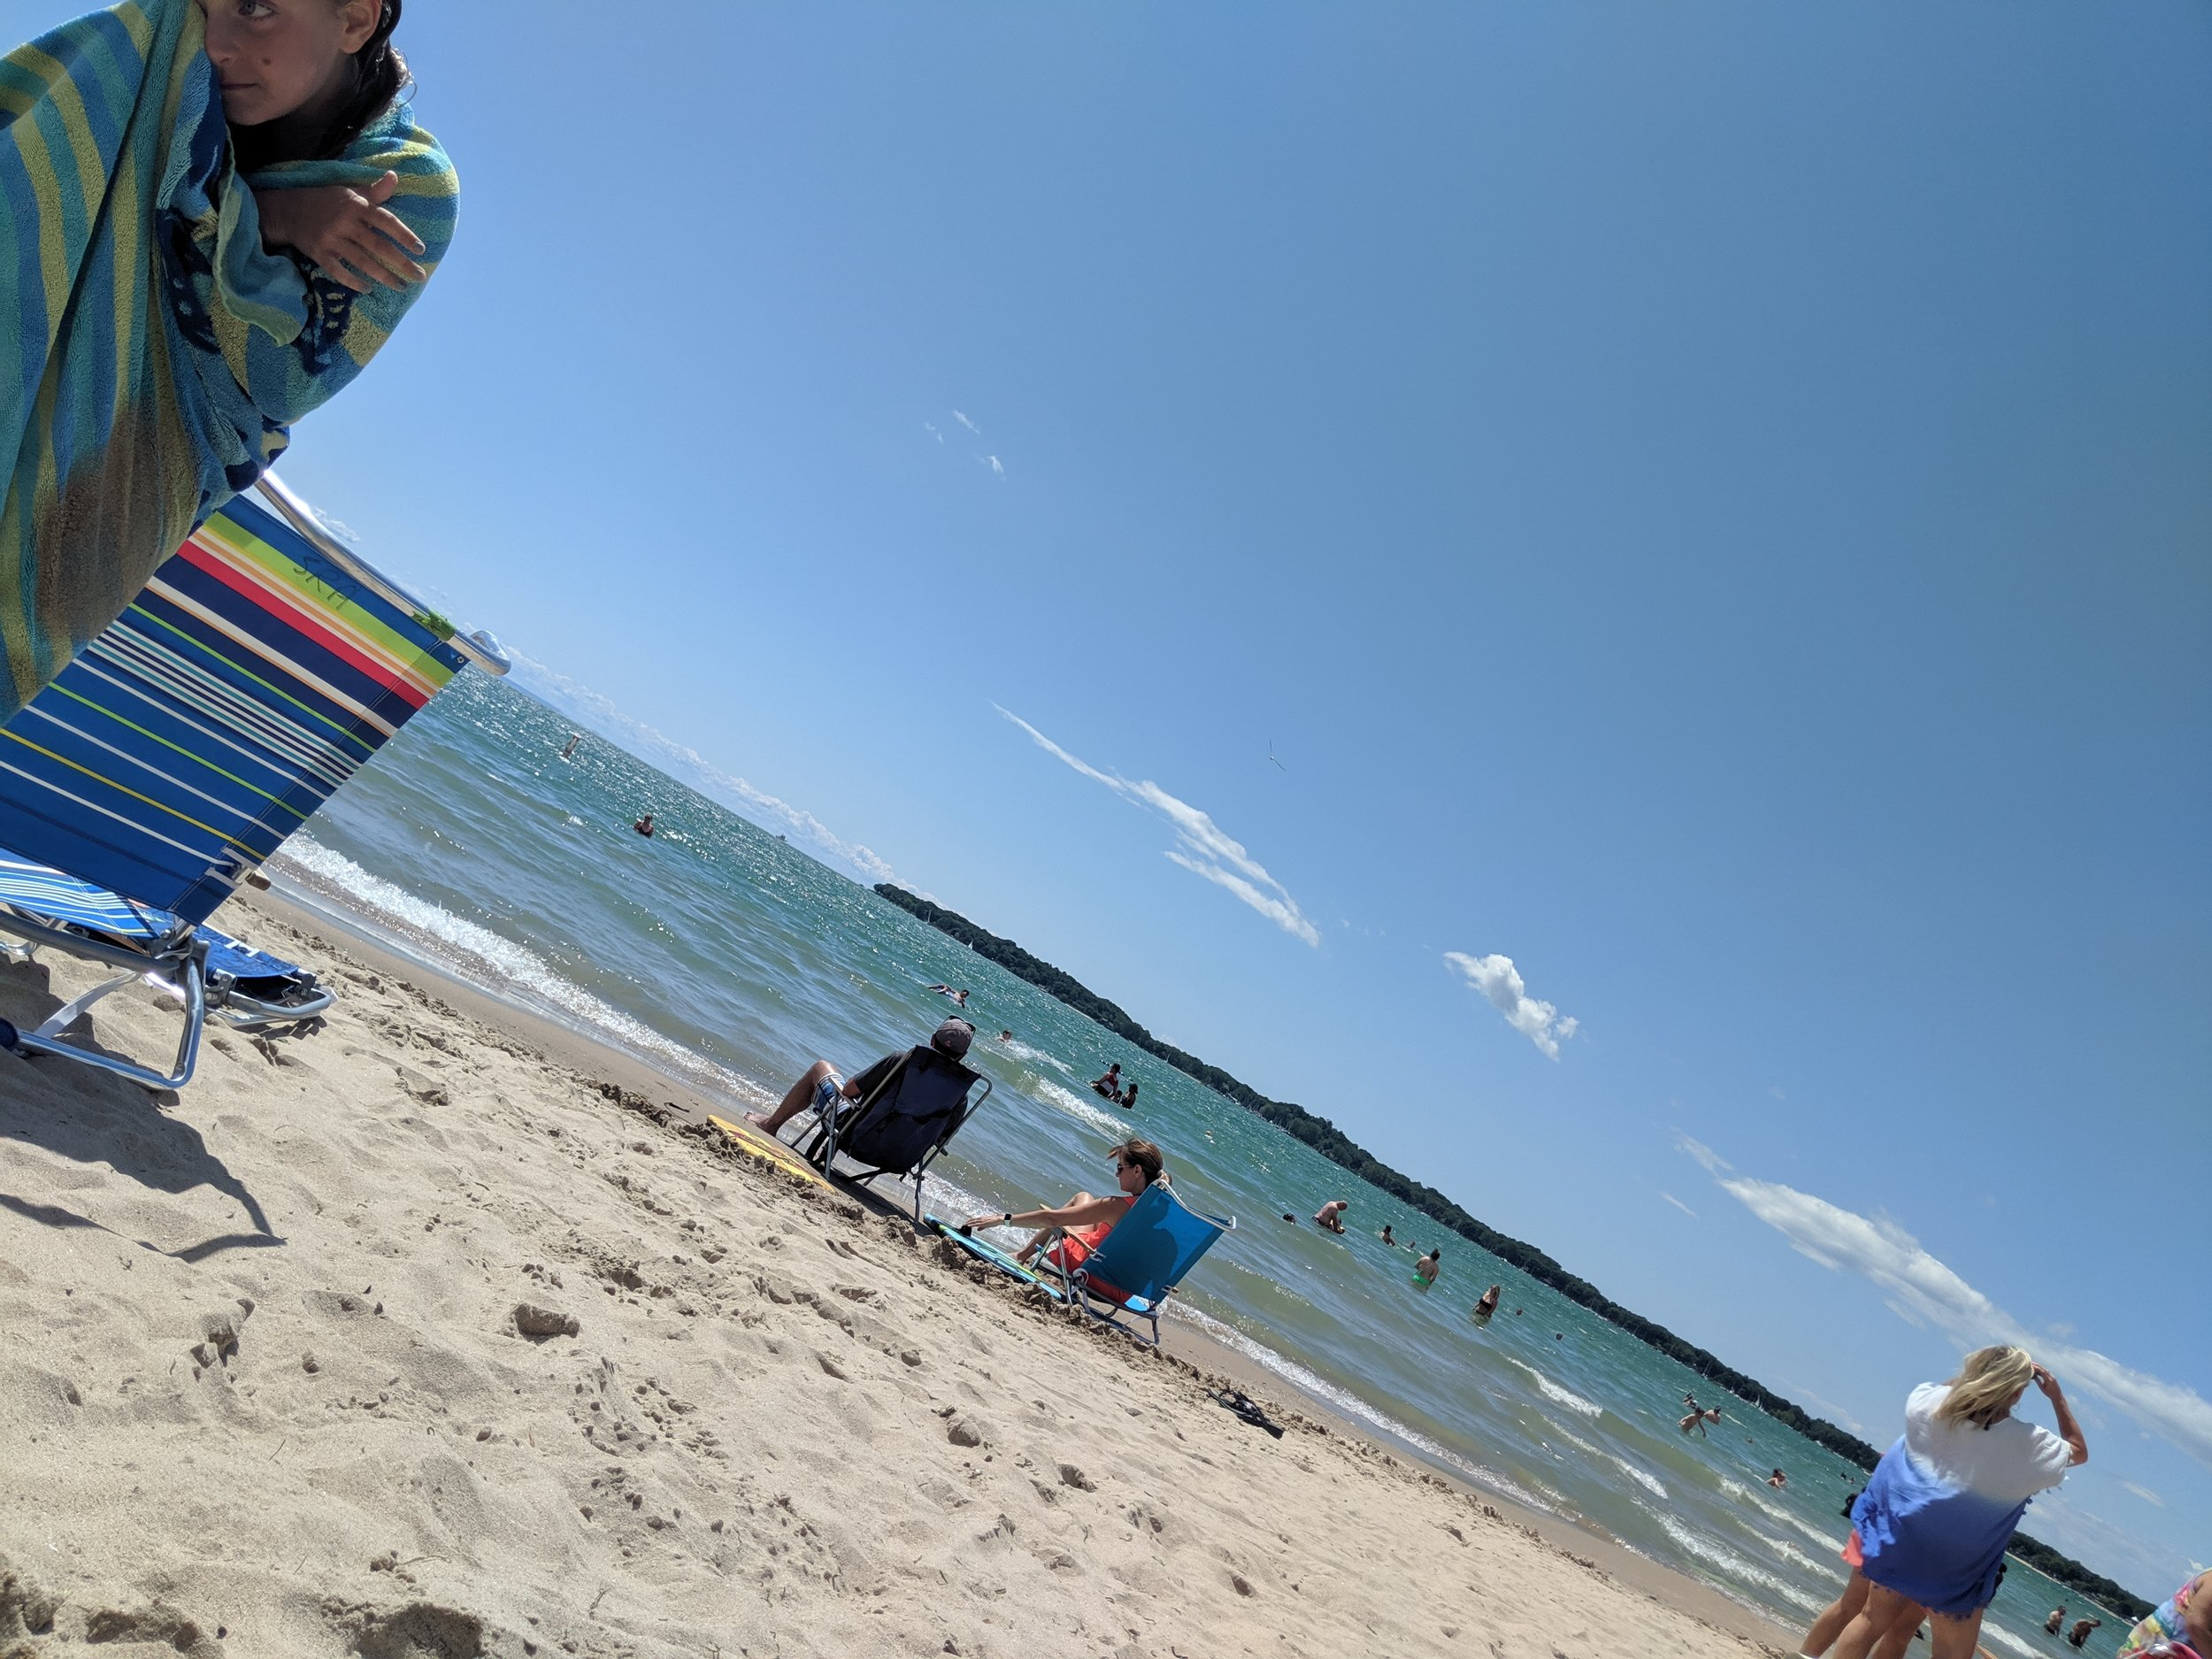 Don't forget to bring your passport and sunblock when you head to Crystal Beach in Canada!